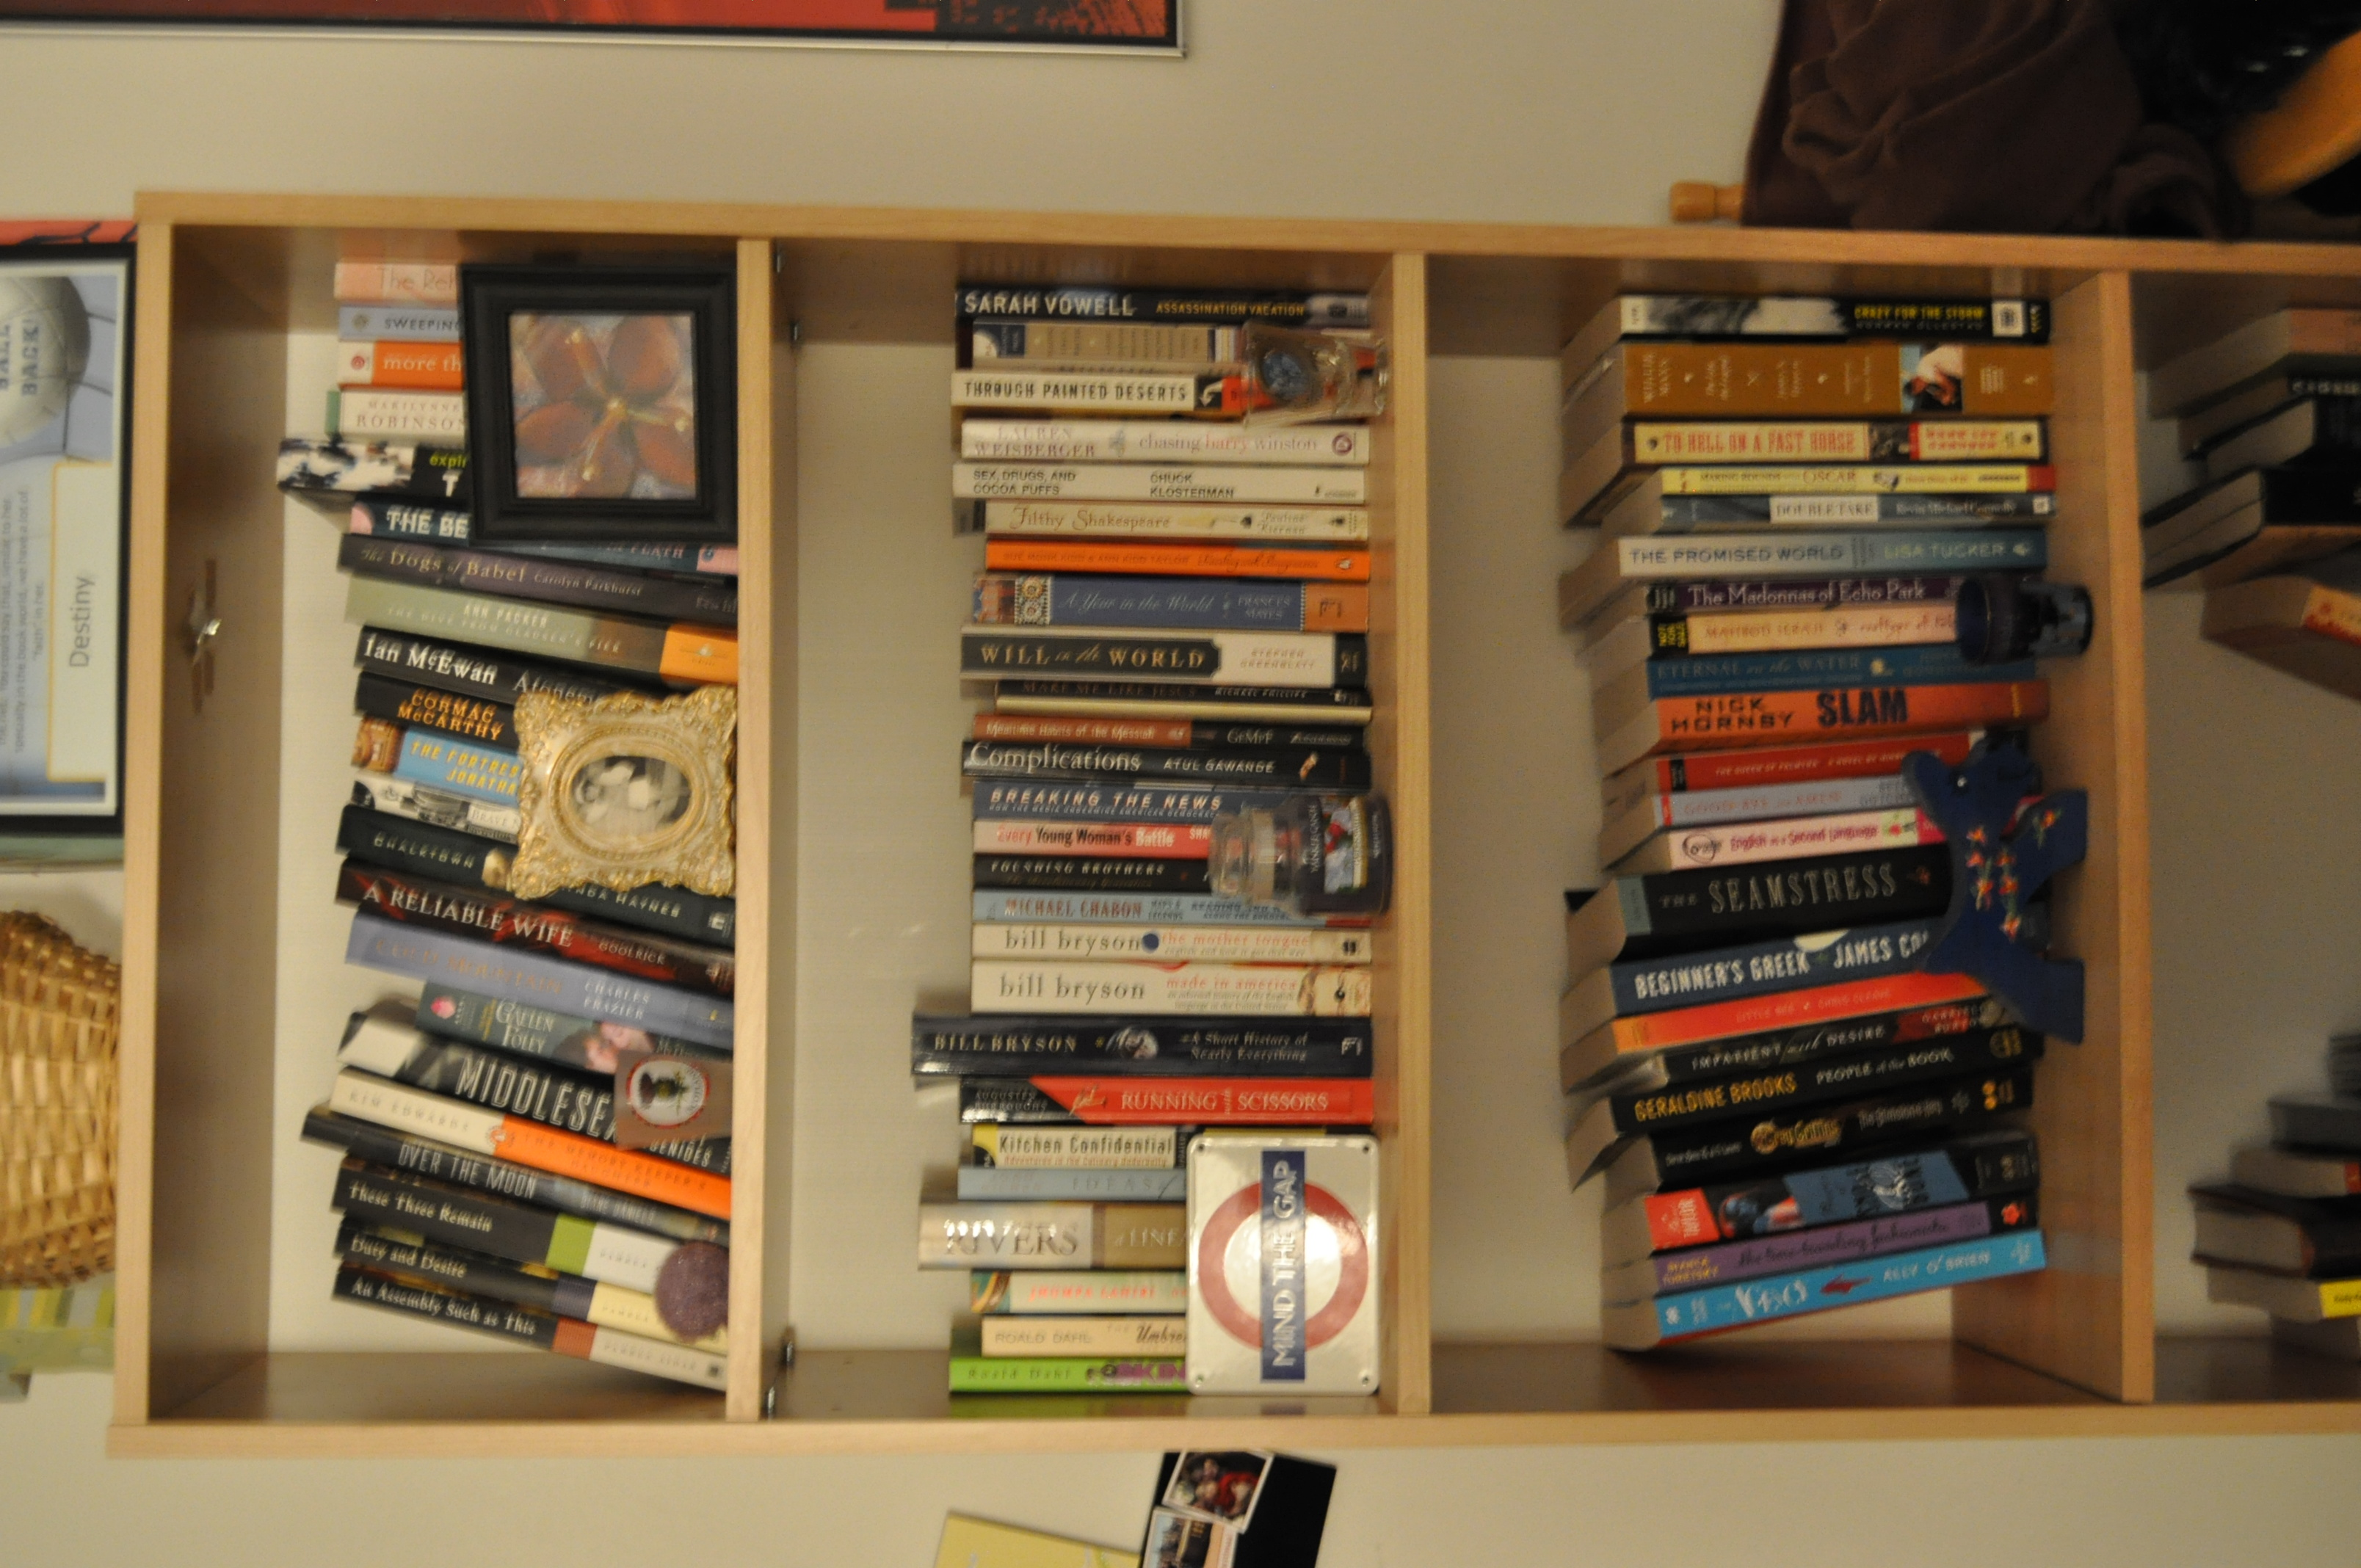 Read Book Shelf meet my tbr bookshelf - sarahreck